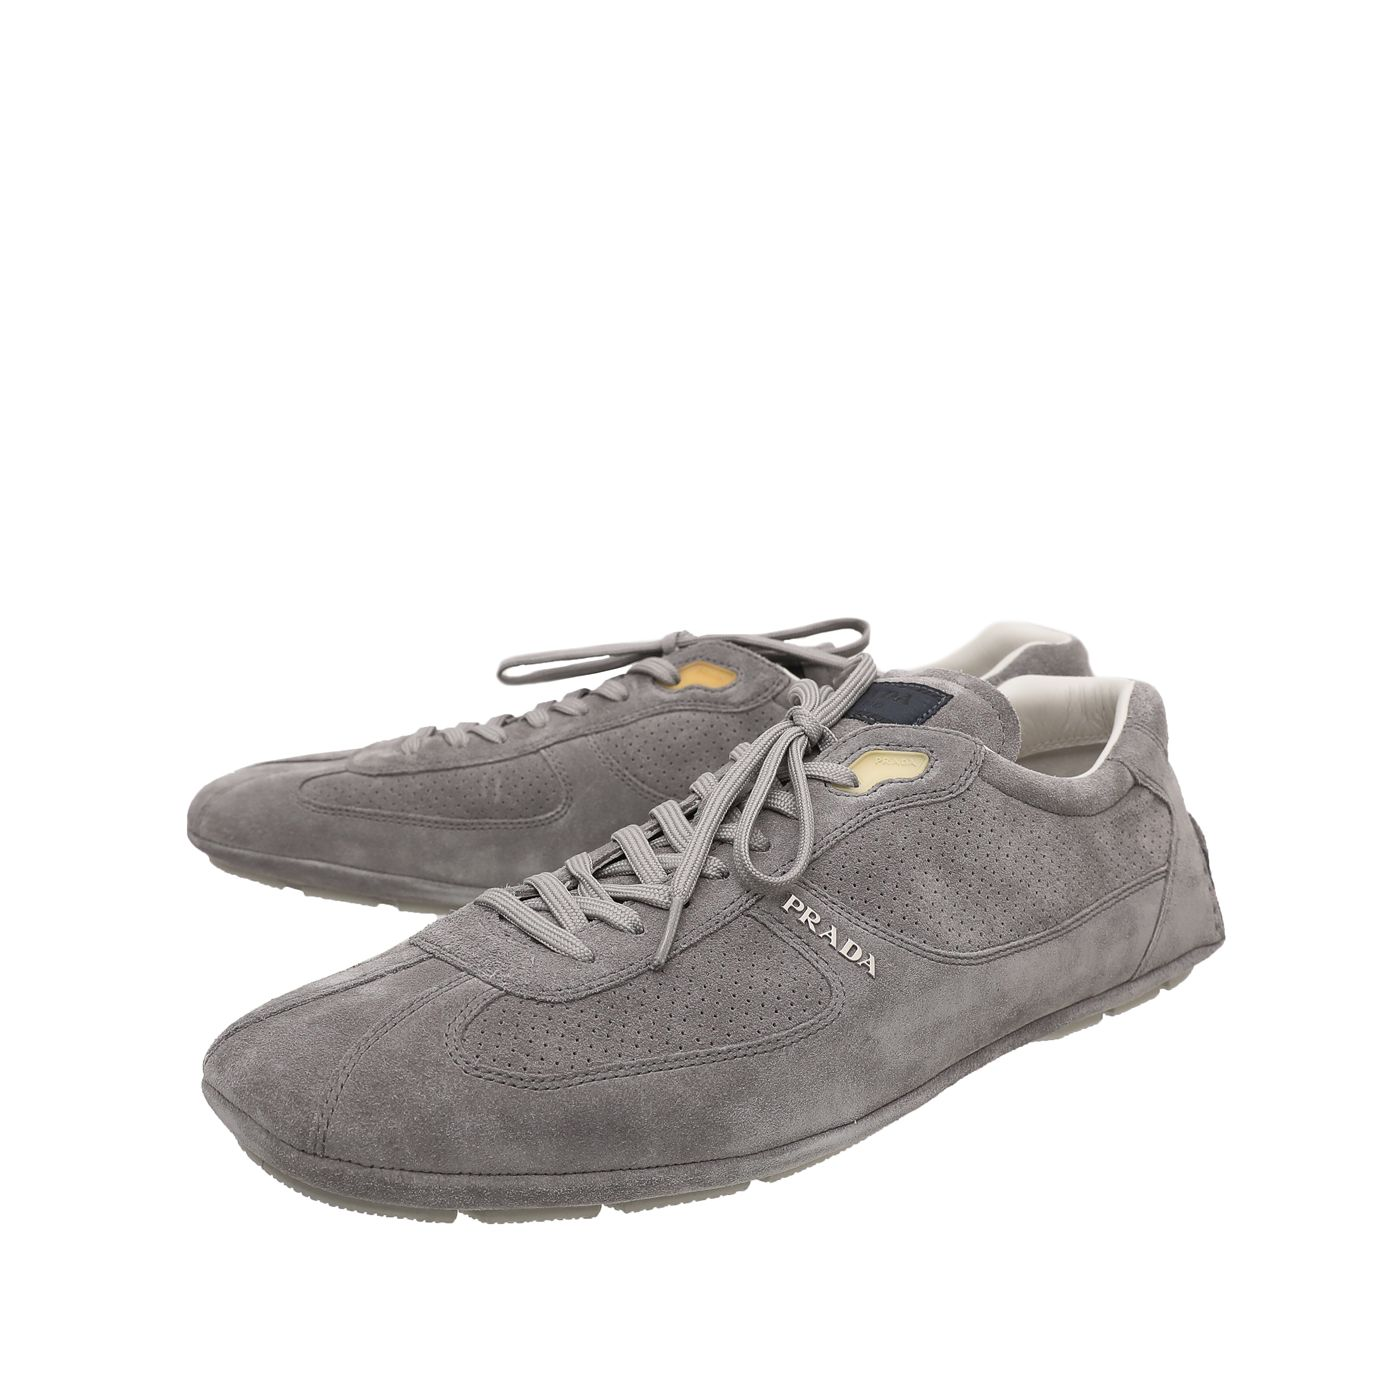 Prada Gray Suede Lace Low Top Sneakers 12